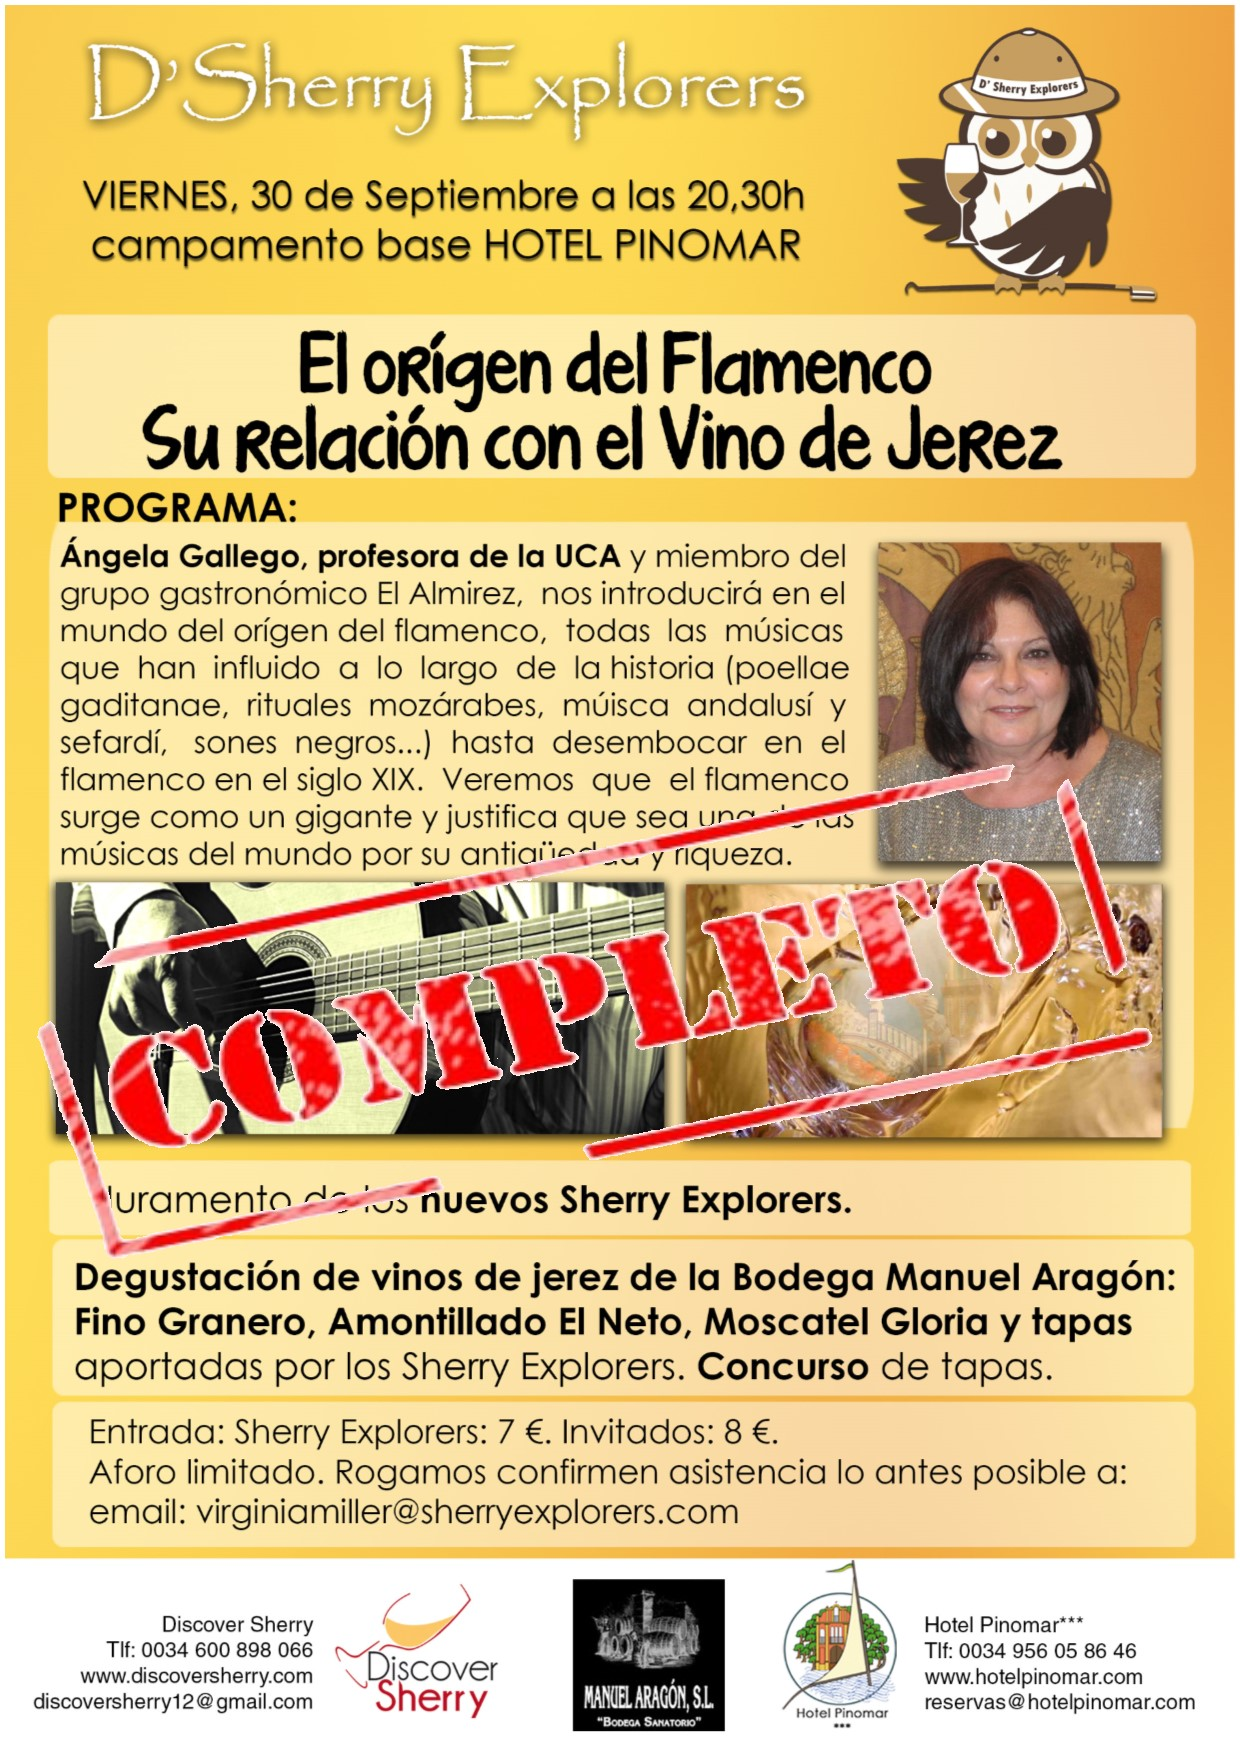 Próxima reunión de los Sherry Explorers: Completa / Next Sherry Explorers´ meeting: Full House